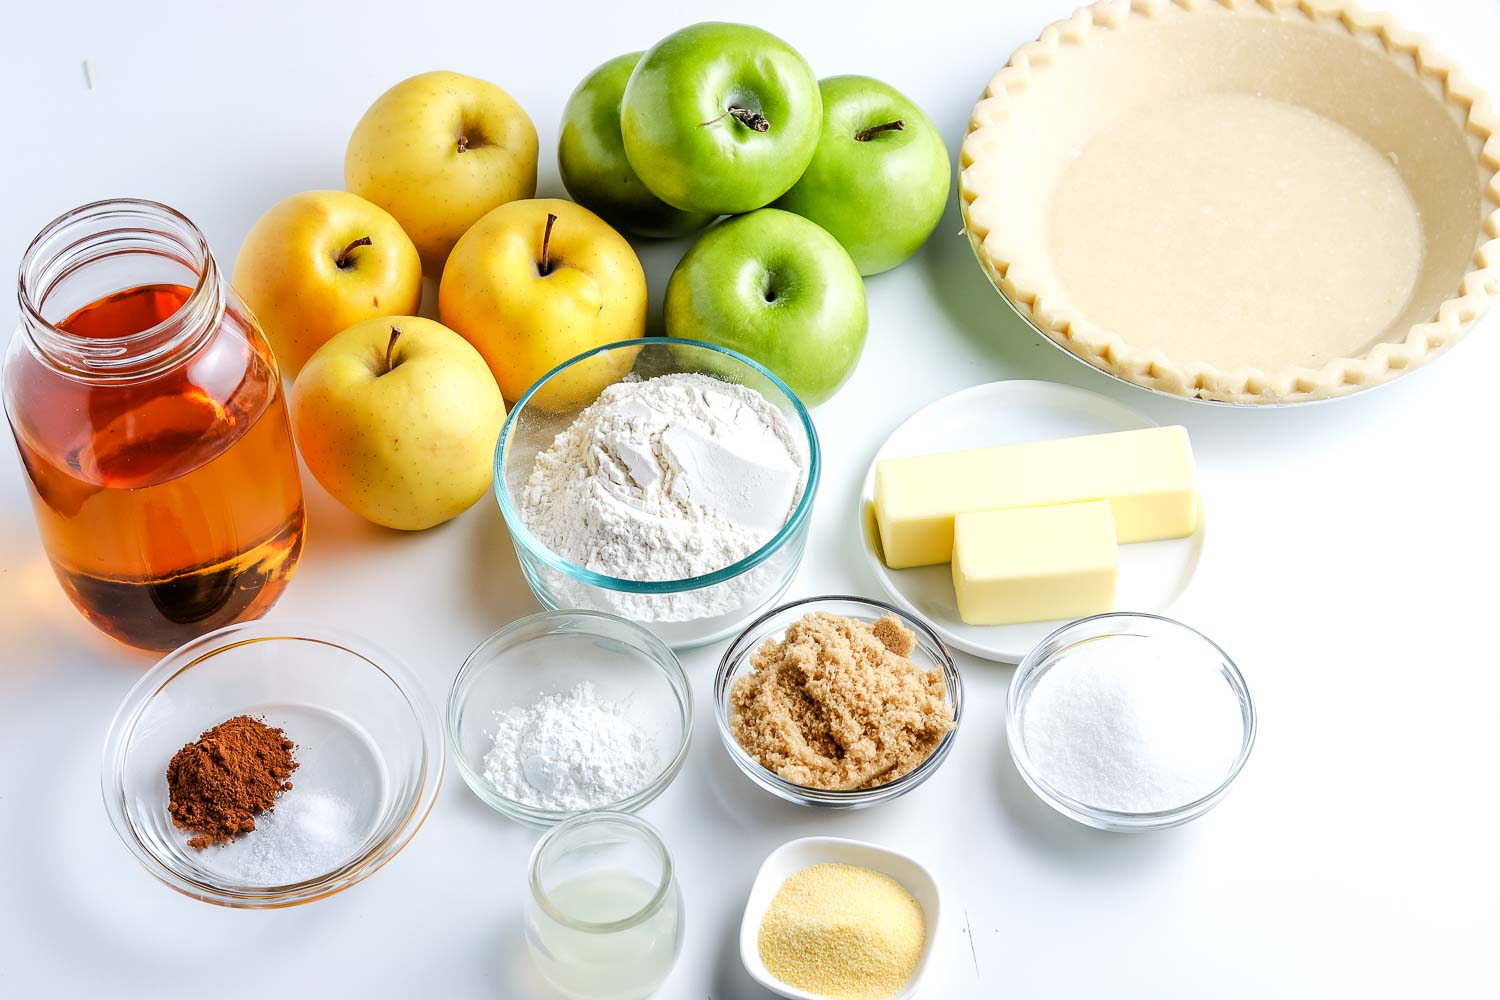 All of the ingredients needed to make this Dutch Apple Pie recipe.